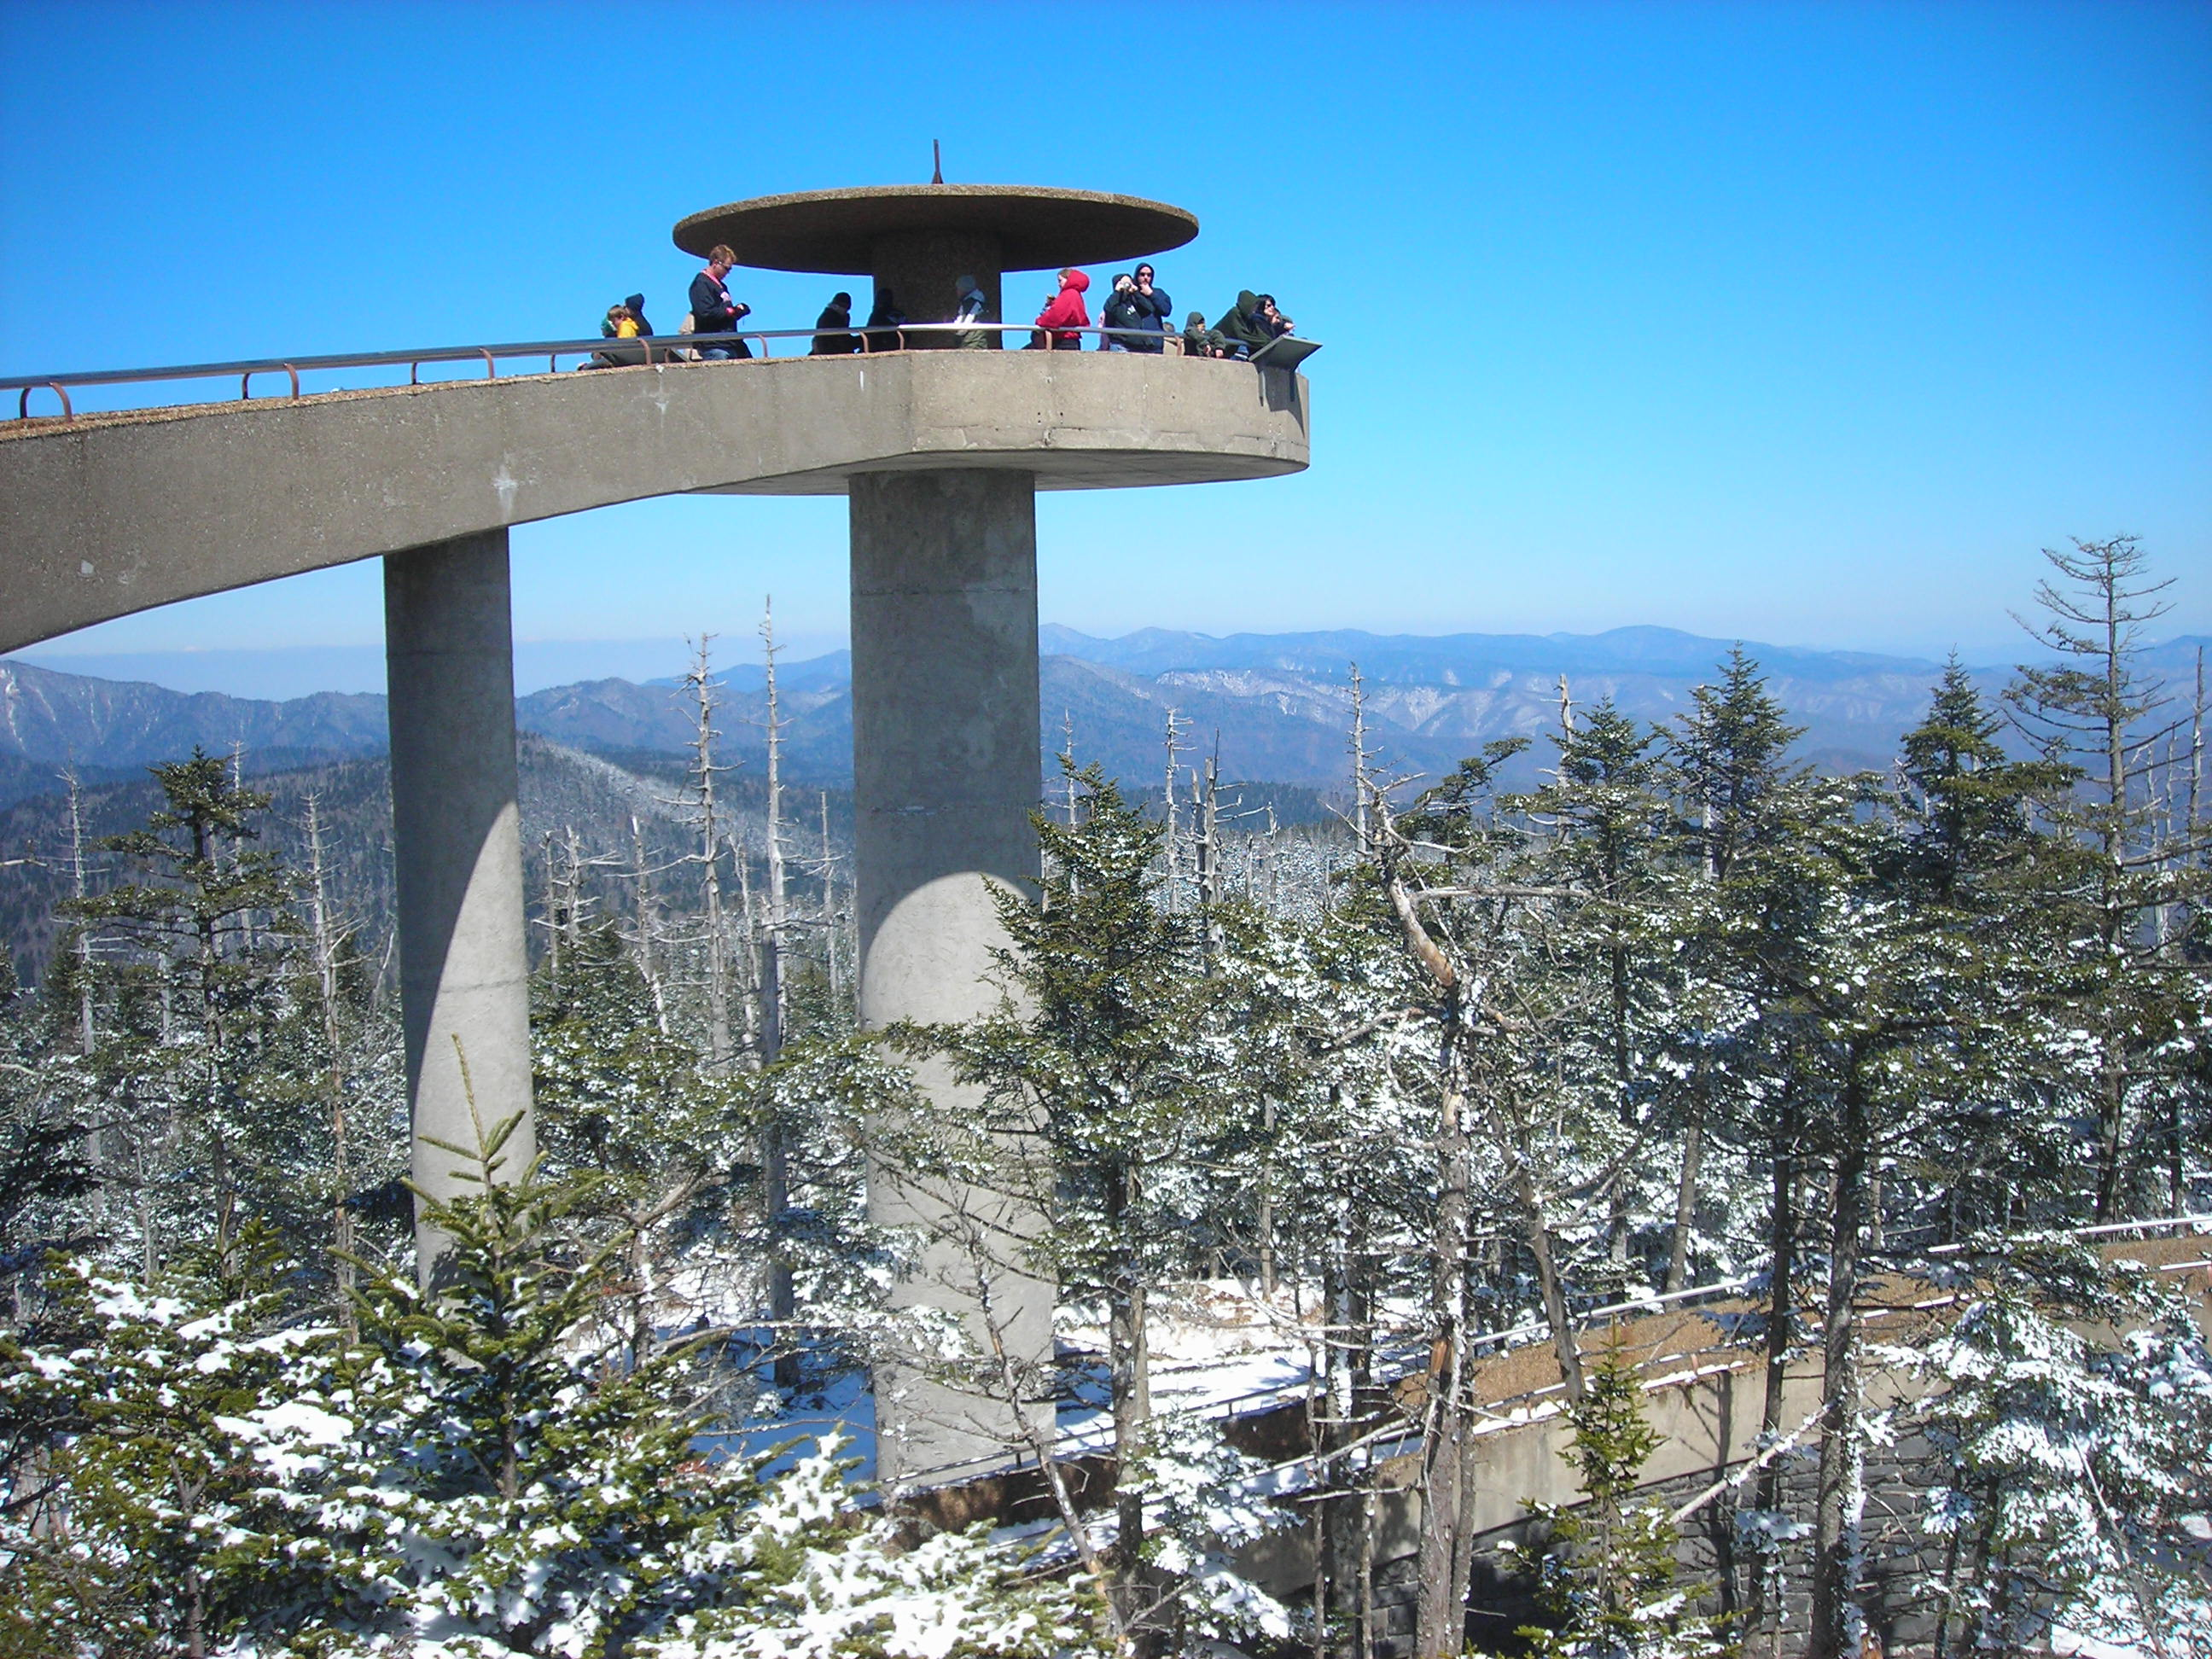 File:Clingman's Dome Tower on a Sunny, Snowy Day.JPG ...